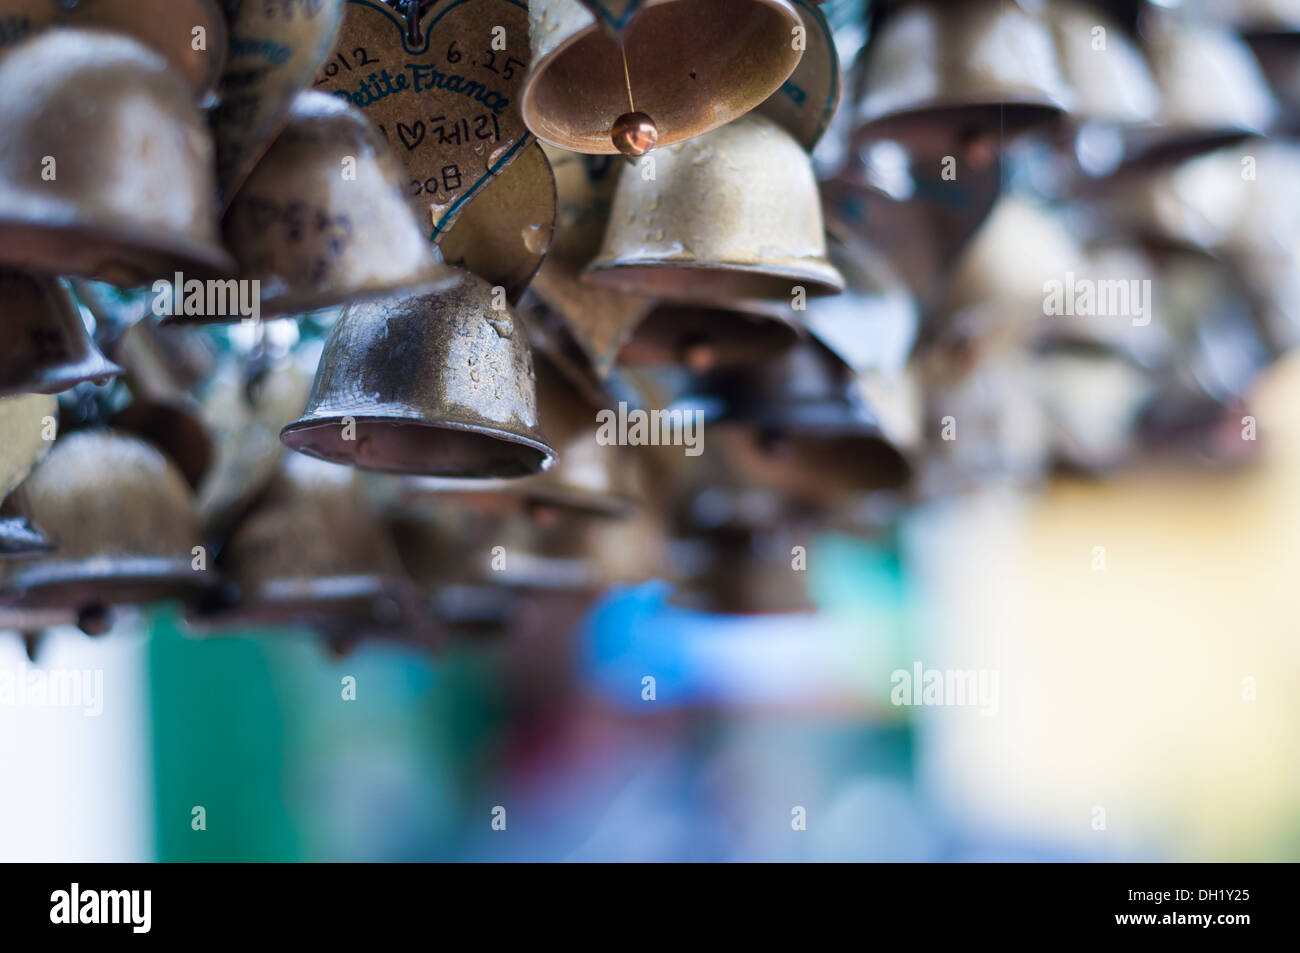 Bells hanging in the rain. - Stock Image